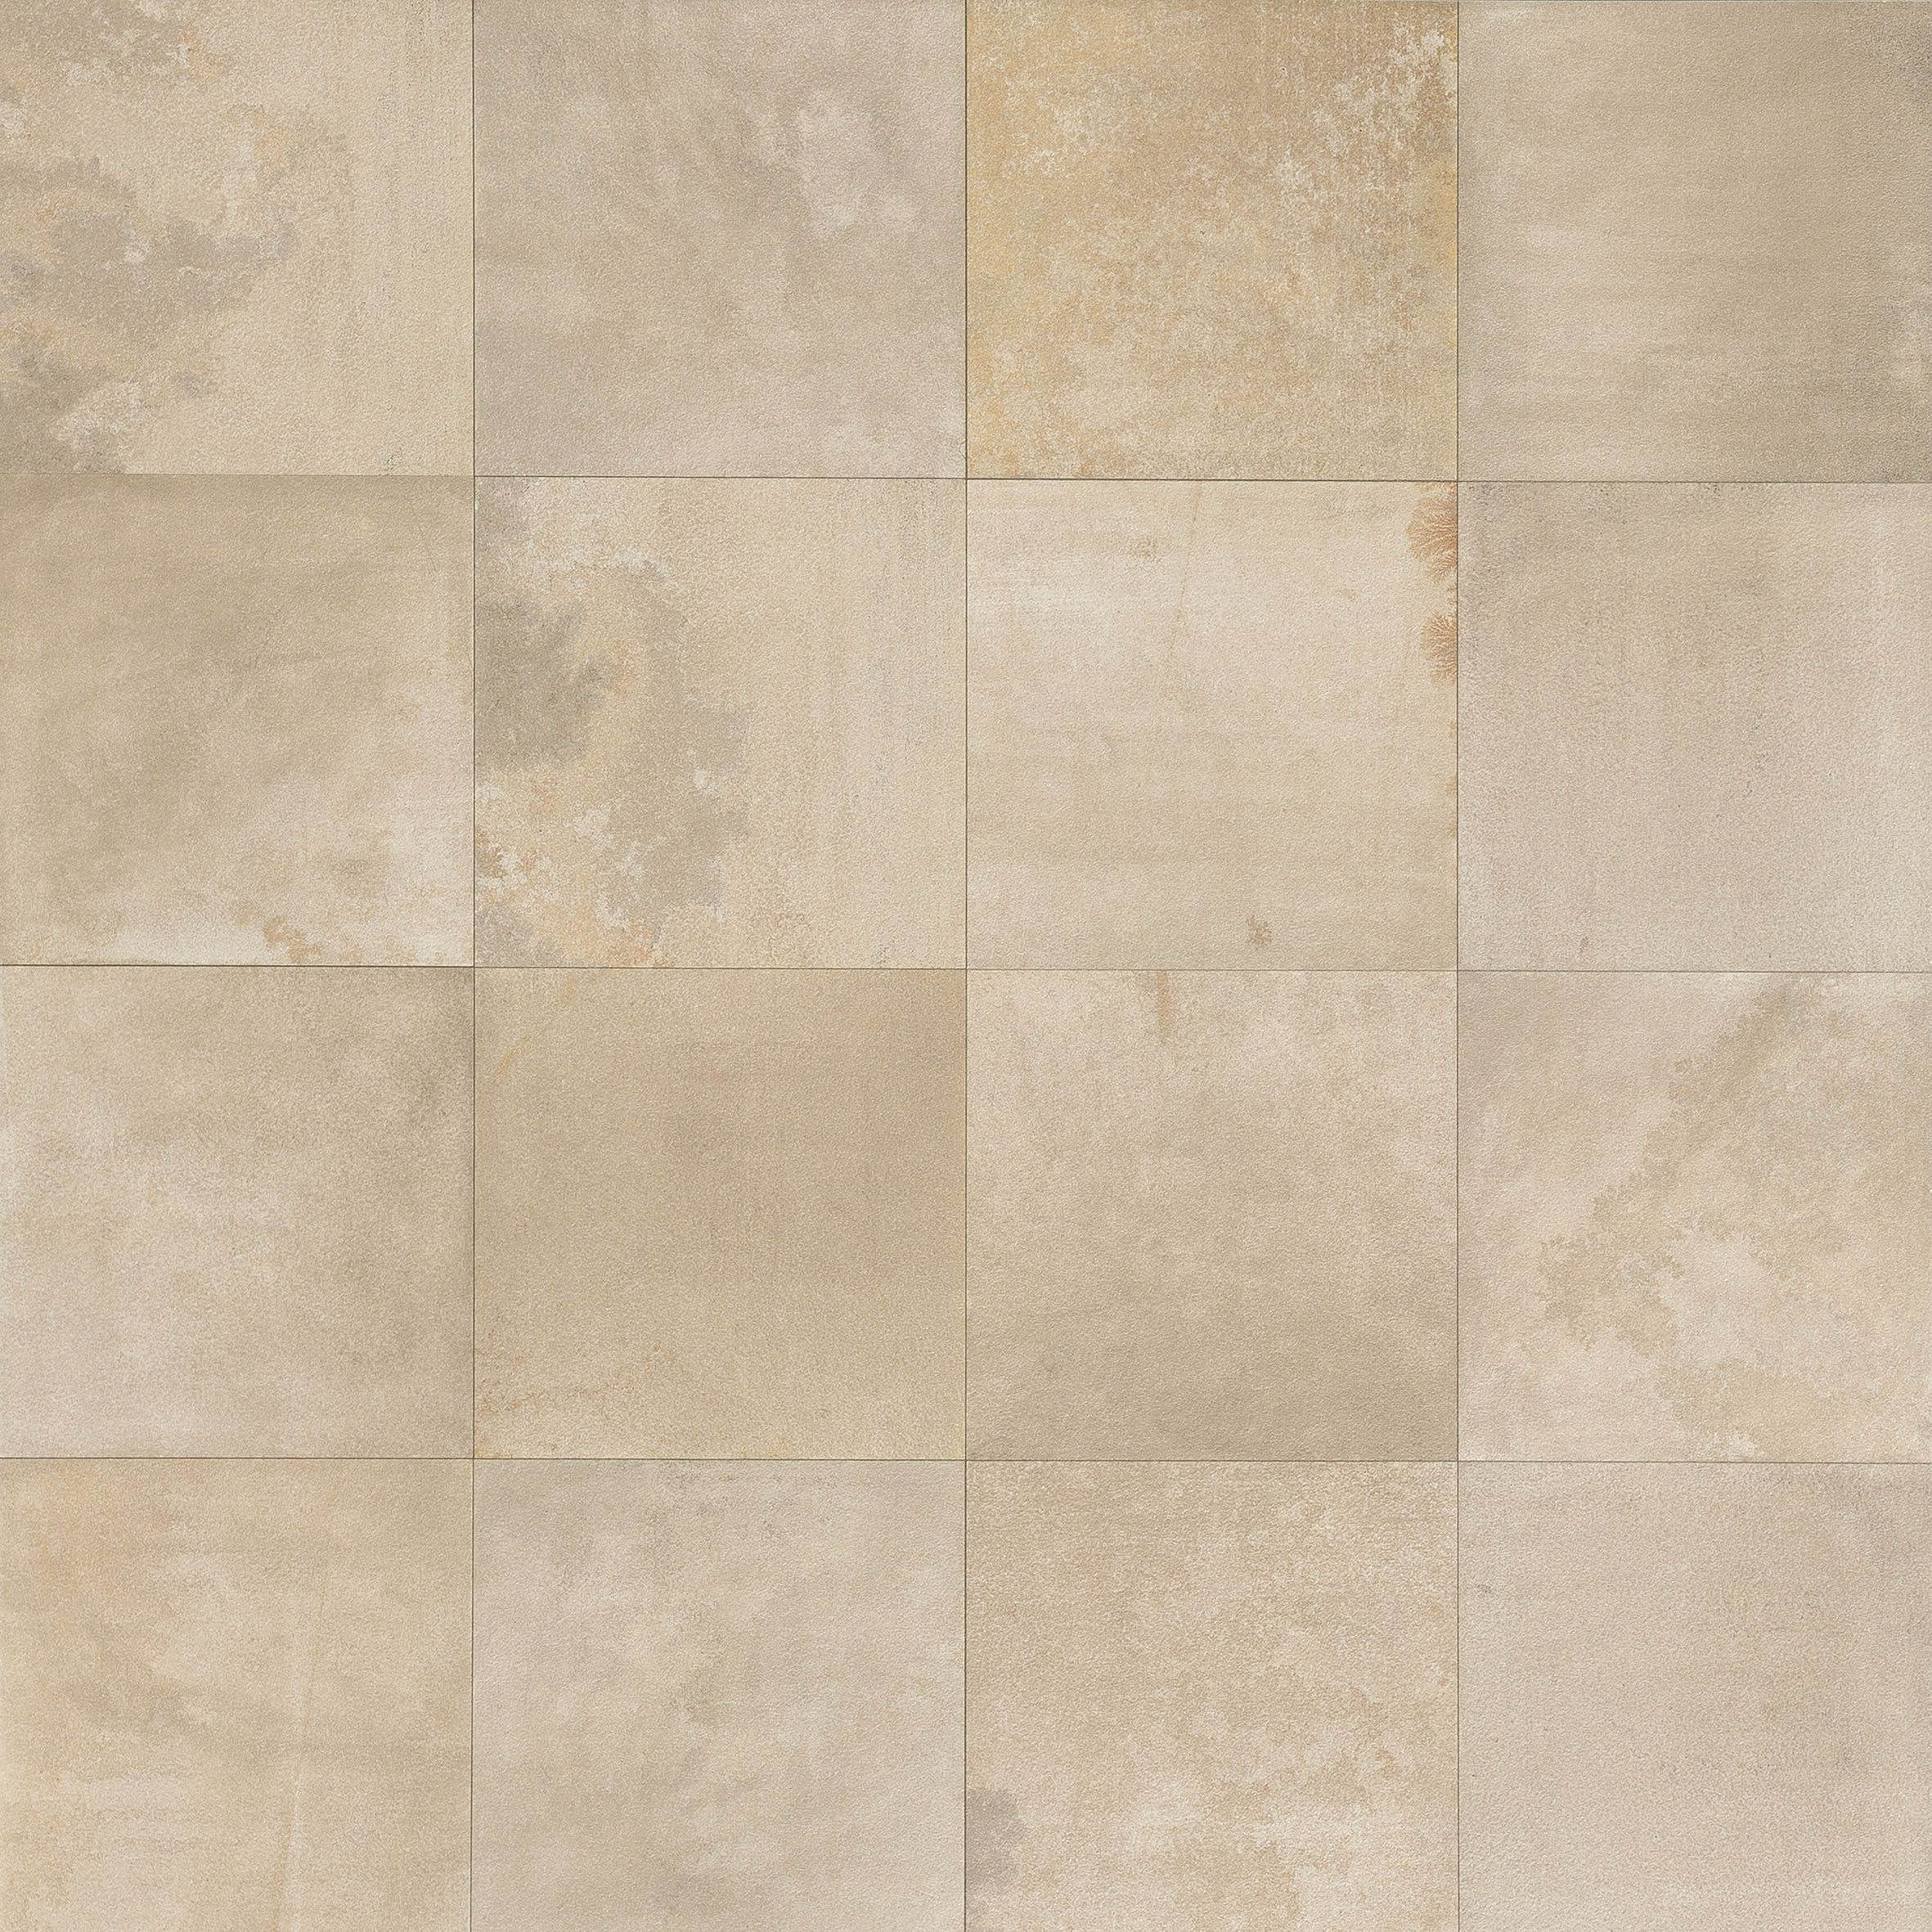 Tiles | Camelot Clarent | Designer Tile Company | Our Products ...